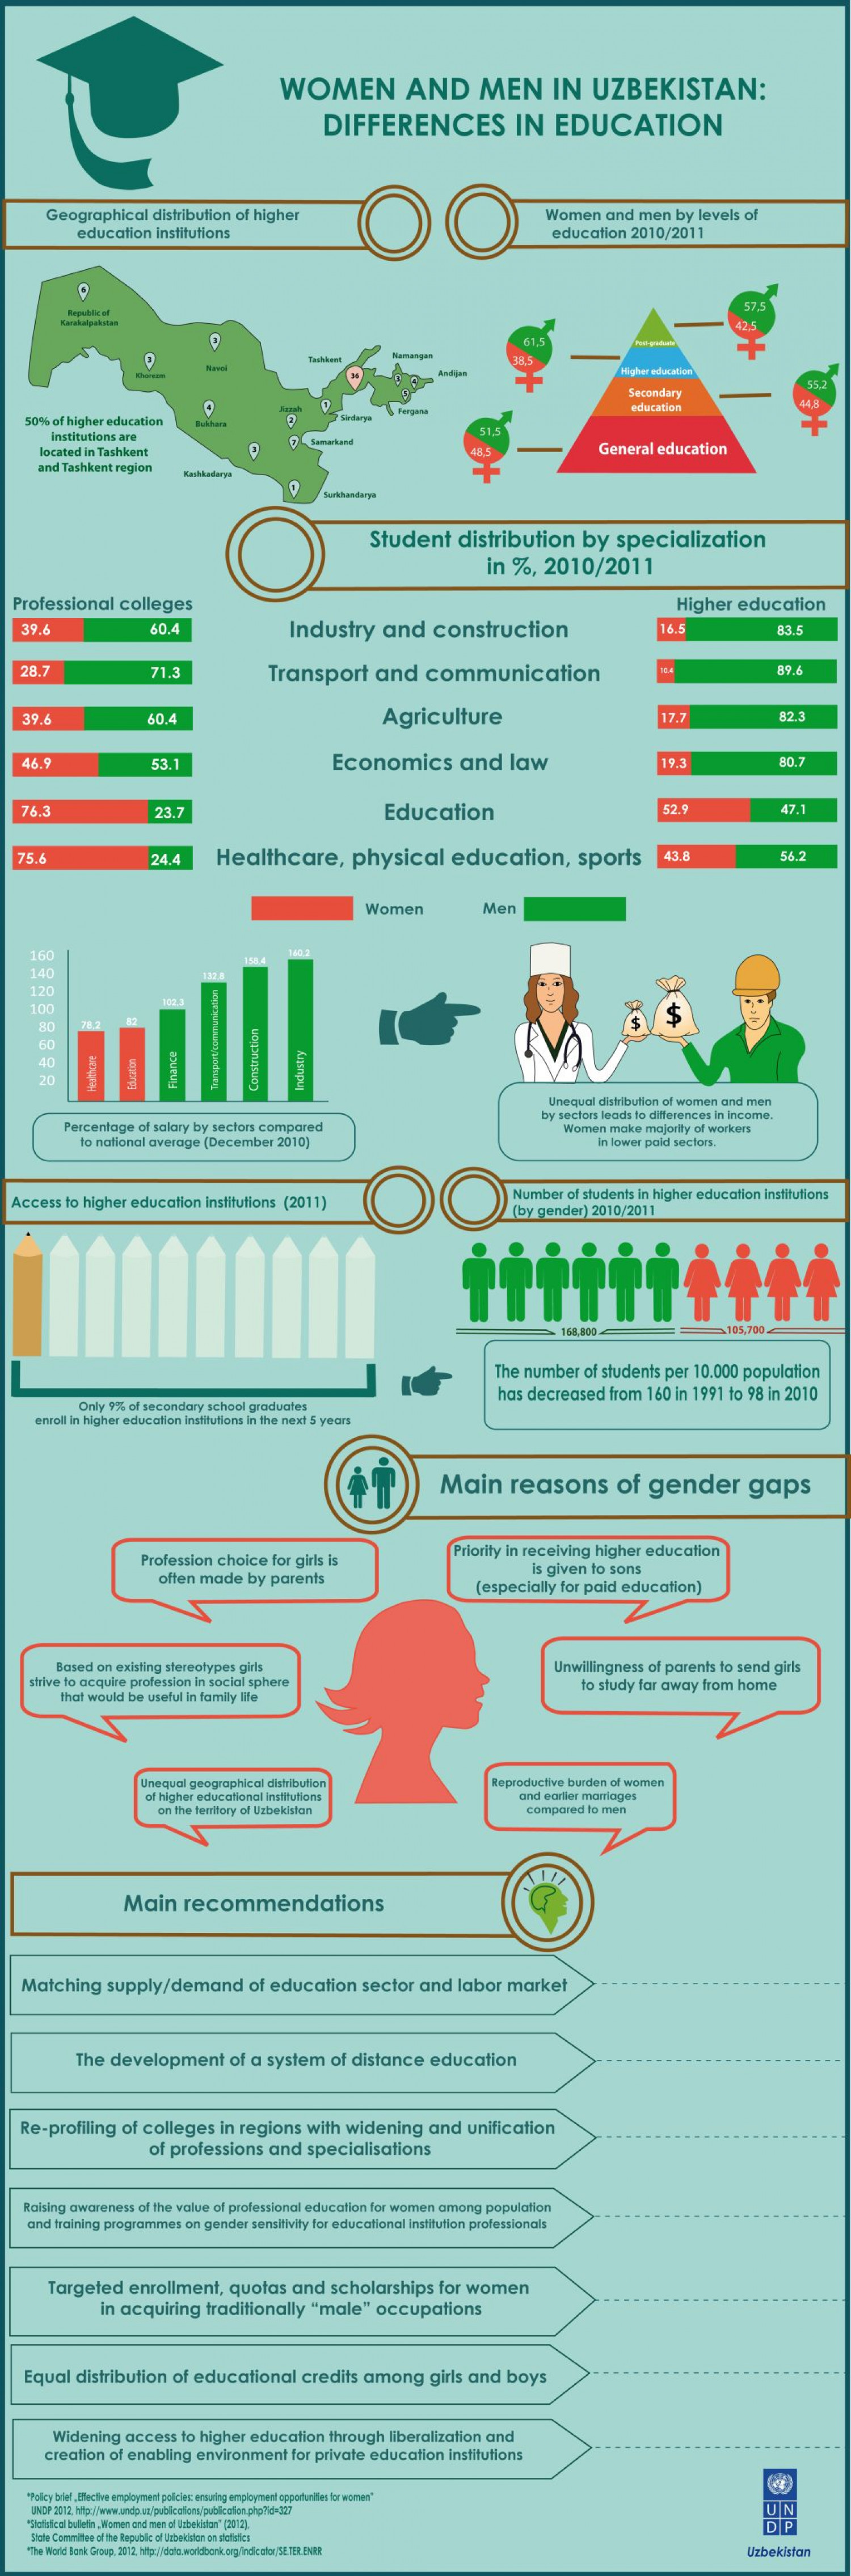 Women and men in Uzbekistan: difference in education Infographic